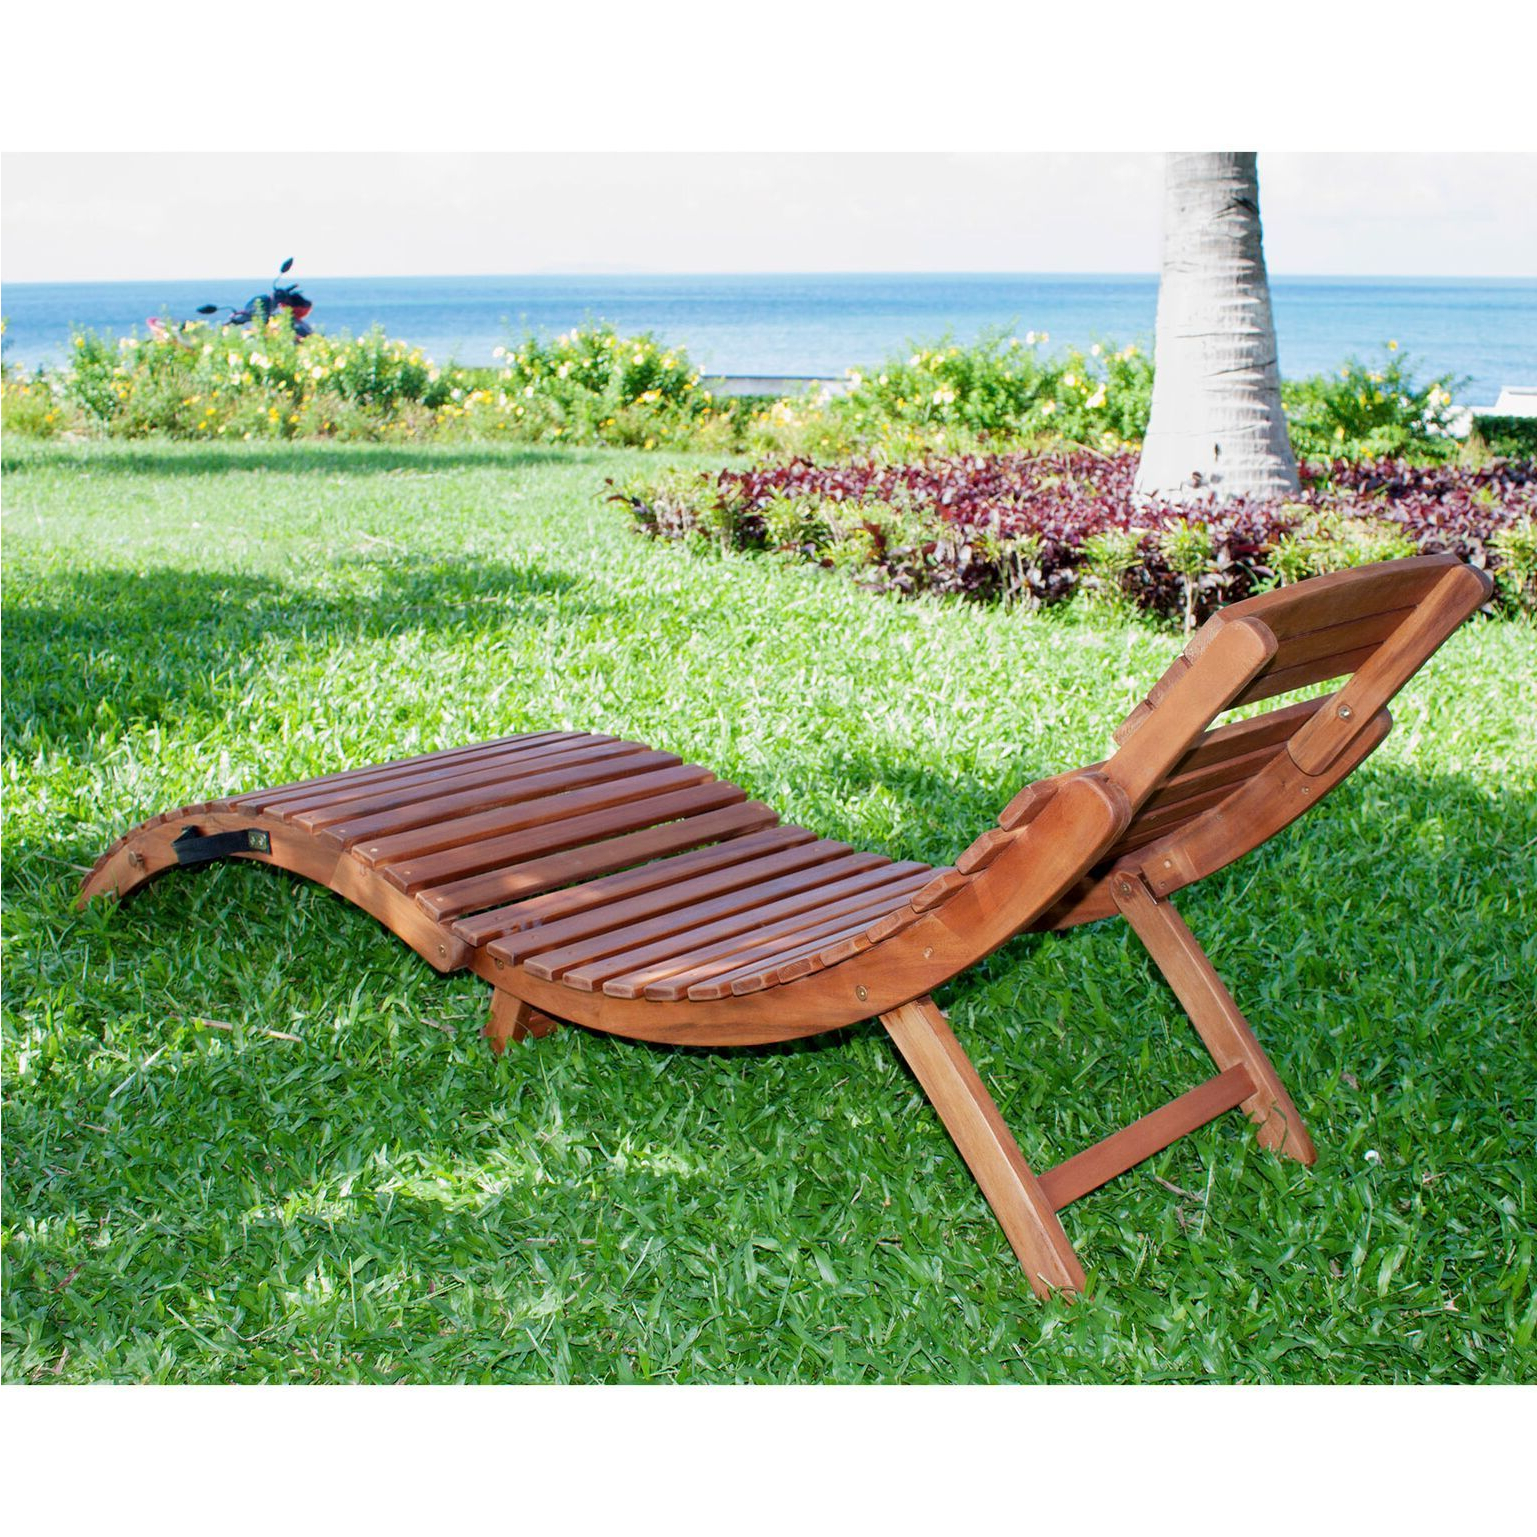 Havenside Home Shi Shi Curved Folding Chaise Lounger With Well Known Curved Folding Chaise Loungers (View 12 of 25)